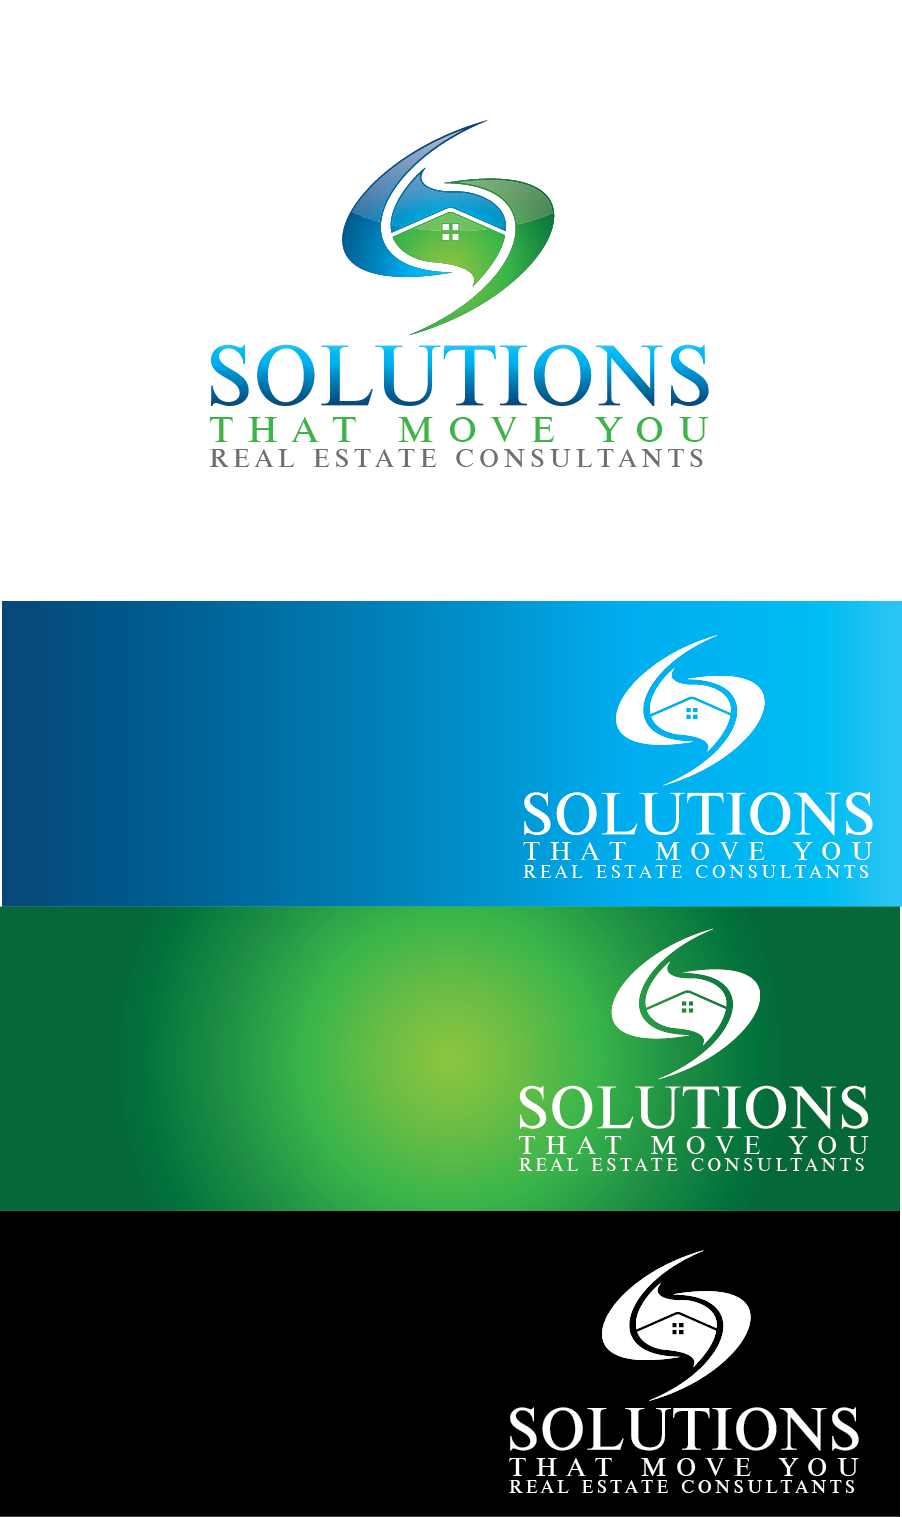 Logo Design by Private User - Entry No. 30 in the Logo Design Contest Imaginative Logo Design for Solutions That Move You.